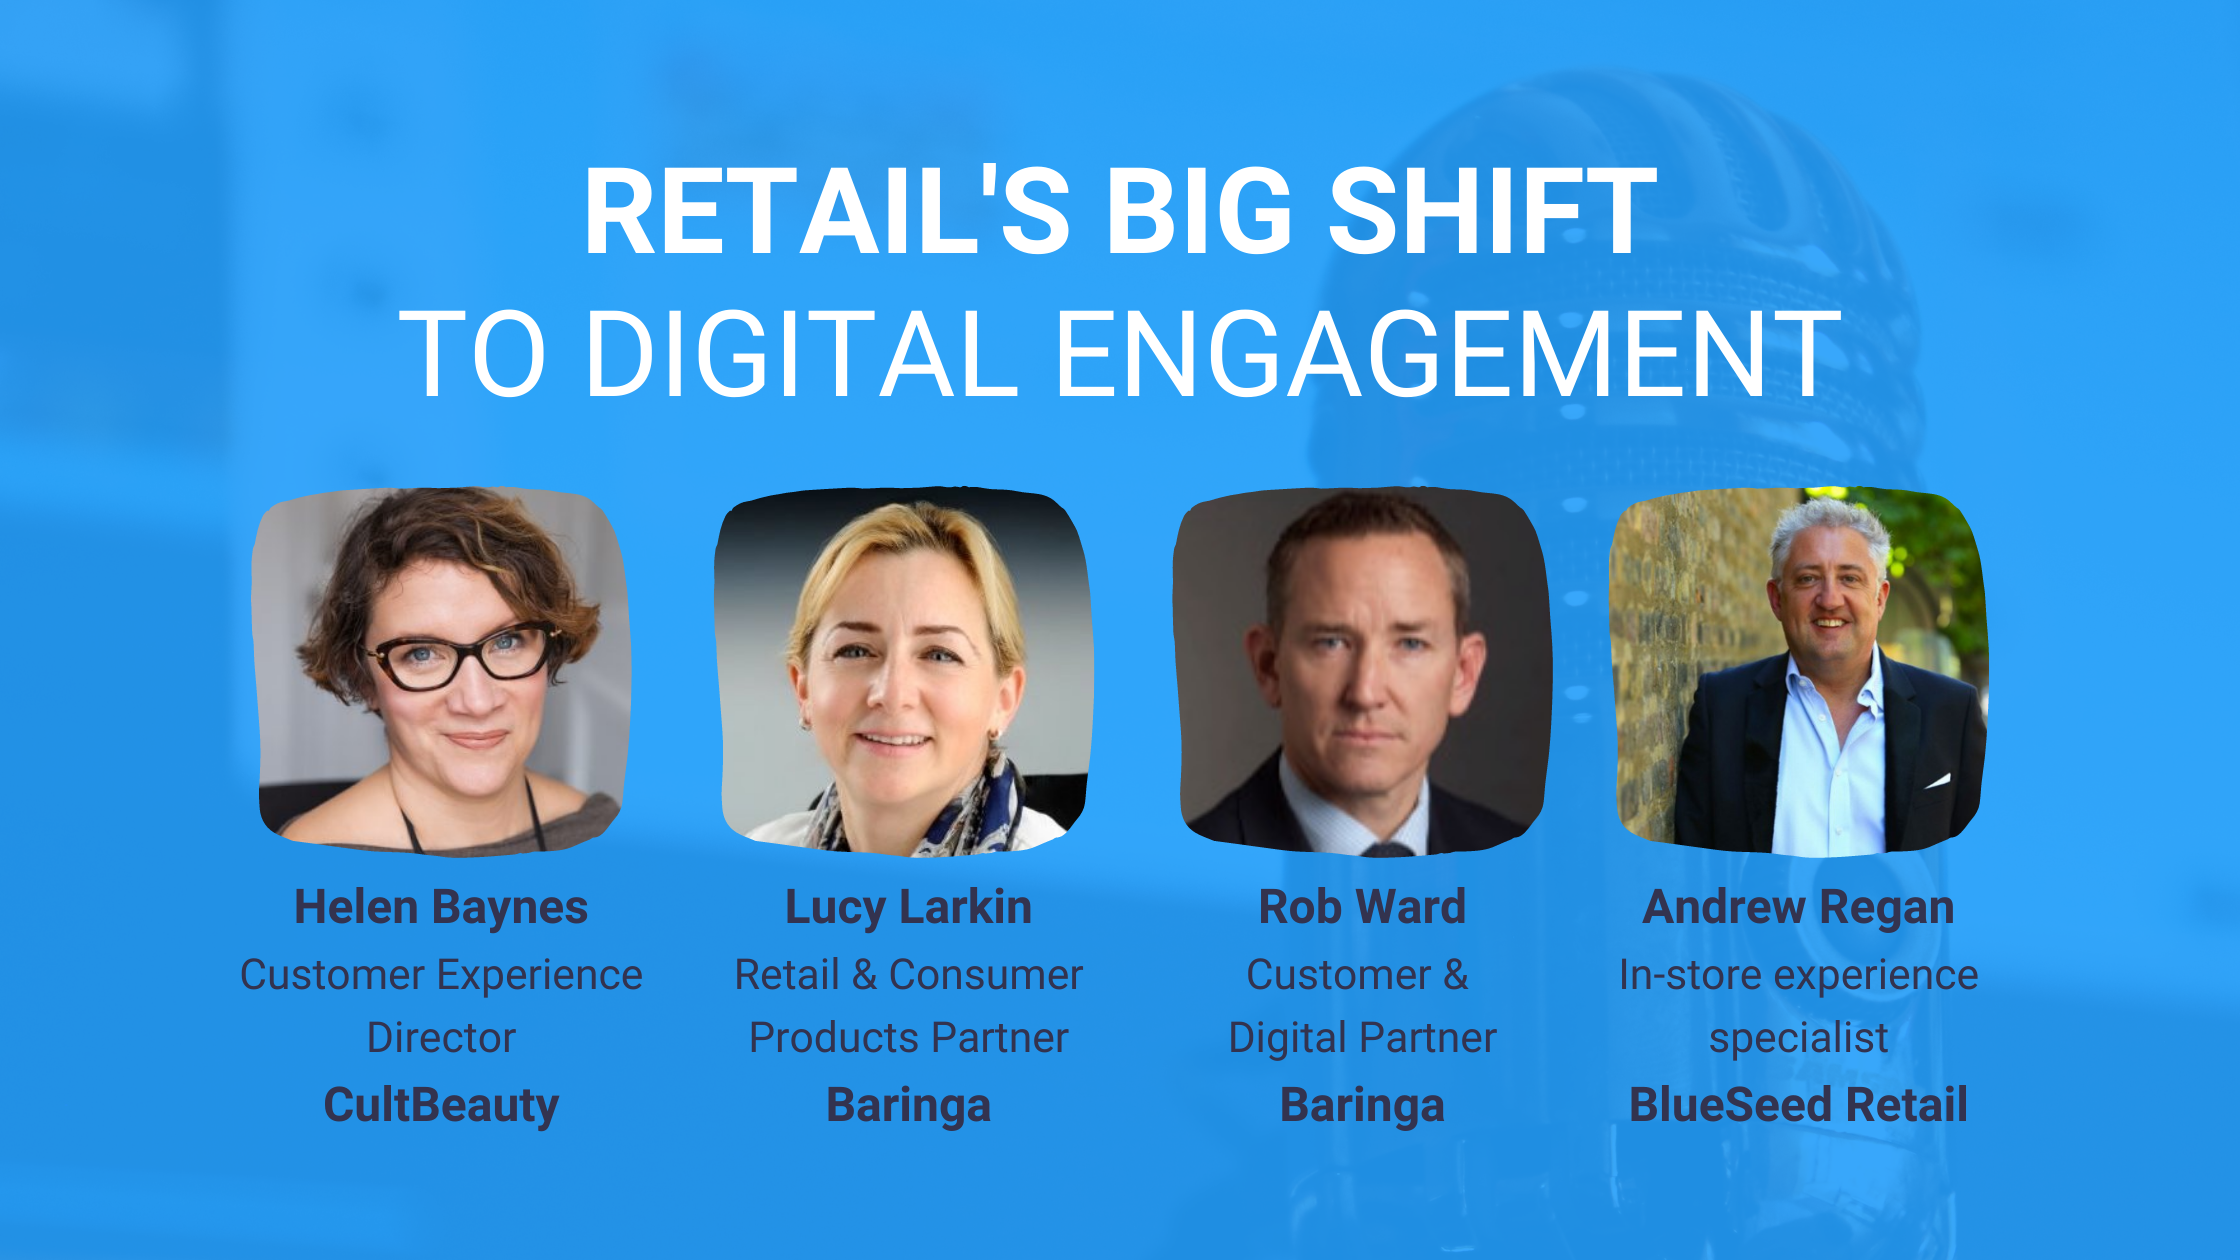 Retail's big shift to digital engagement